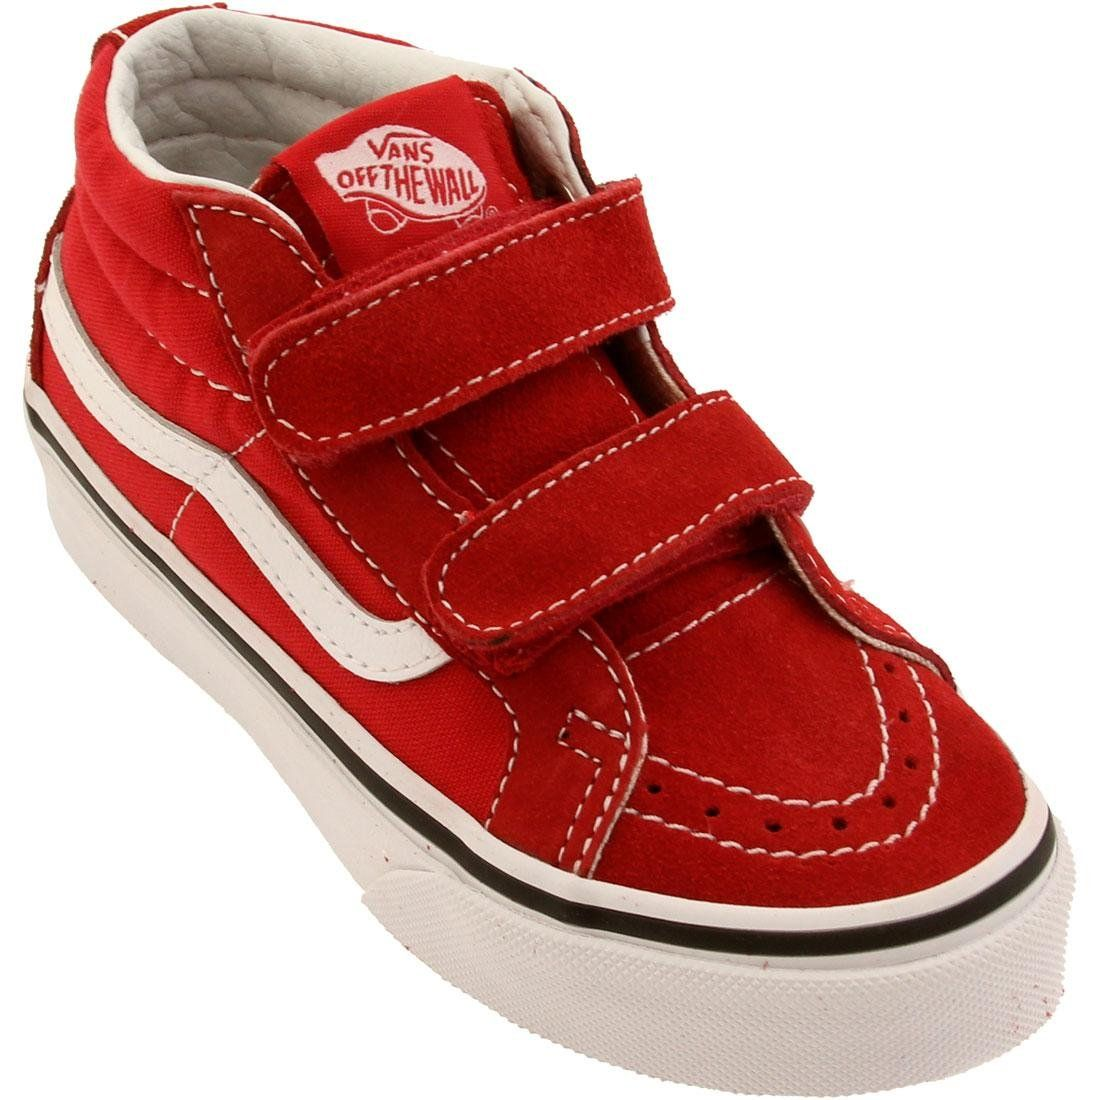 0faeb7688b6 Vans Sk8 Hi with velcro closure in red